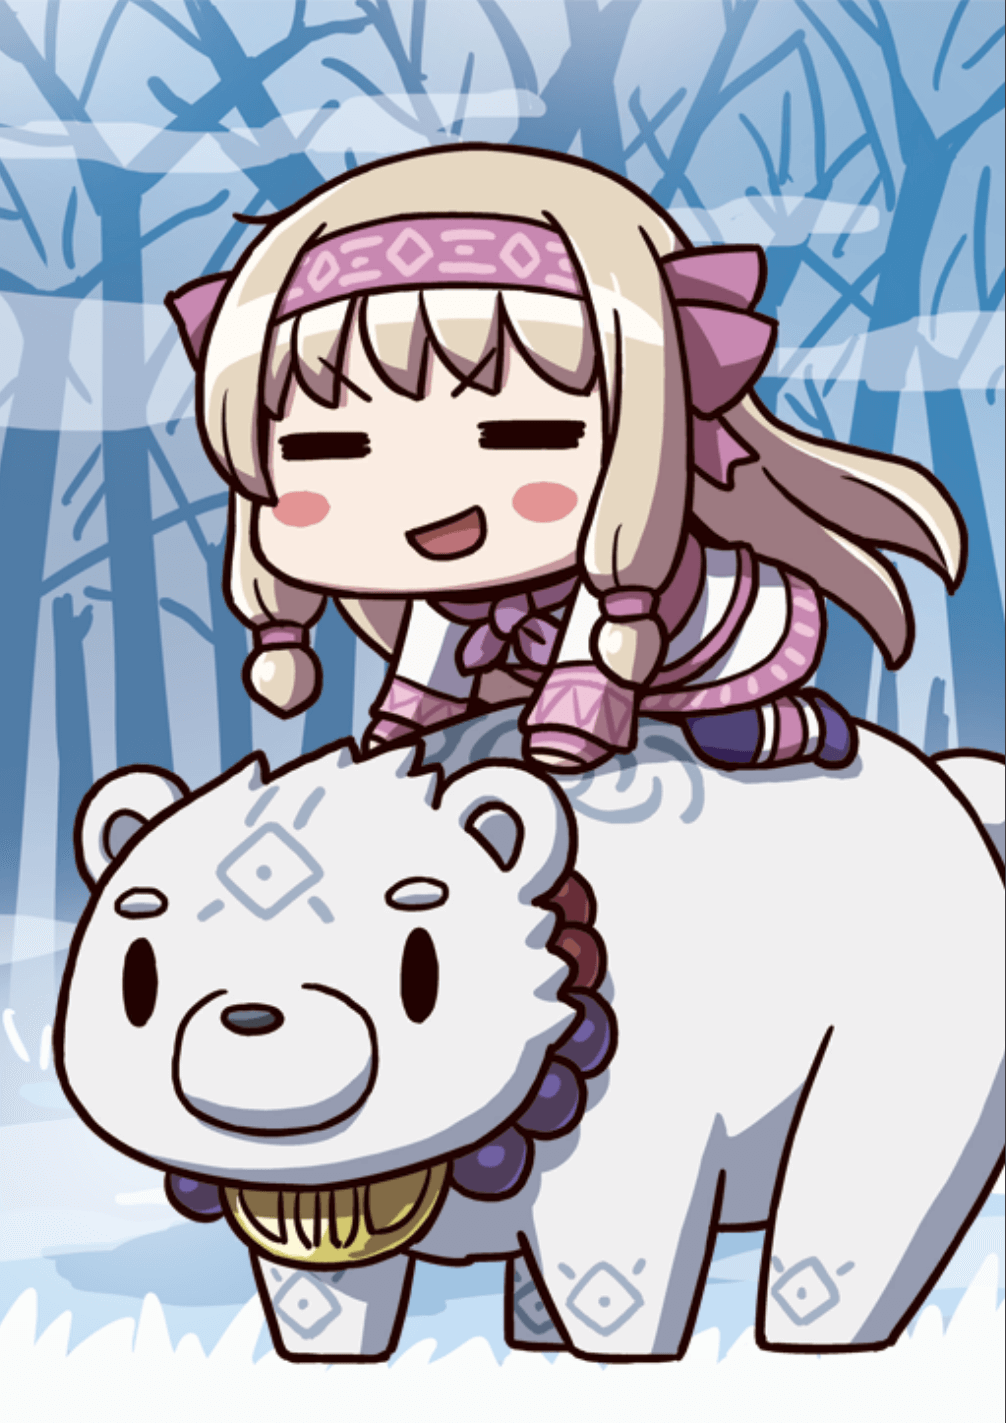 April Fool S Art Gallery Fate Grand Order Wiki Gamepress Art Gallery Chibi The Fool In ccc, falling once into this valley of death meant being unable to ever climb back out, but in fgo, there is the chance of scooping out the. april fool s art gallery fate grand